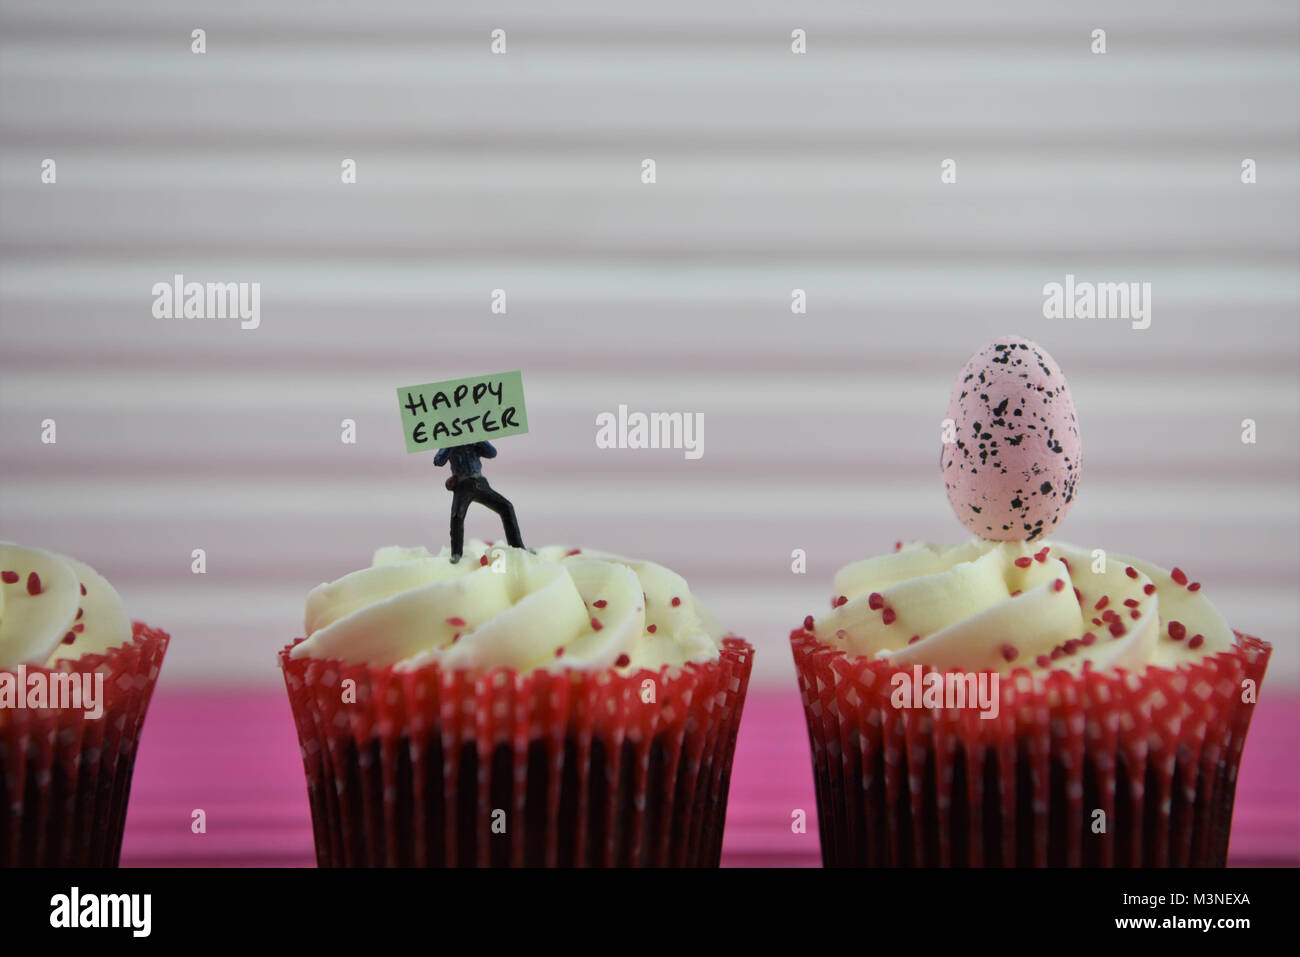 Easter time food cupcakes with miniature person figurine and sign board for happy Easter Stock Photo